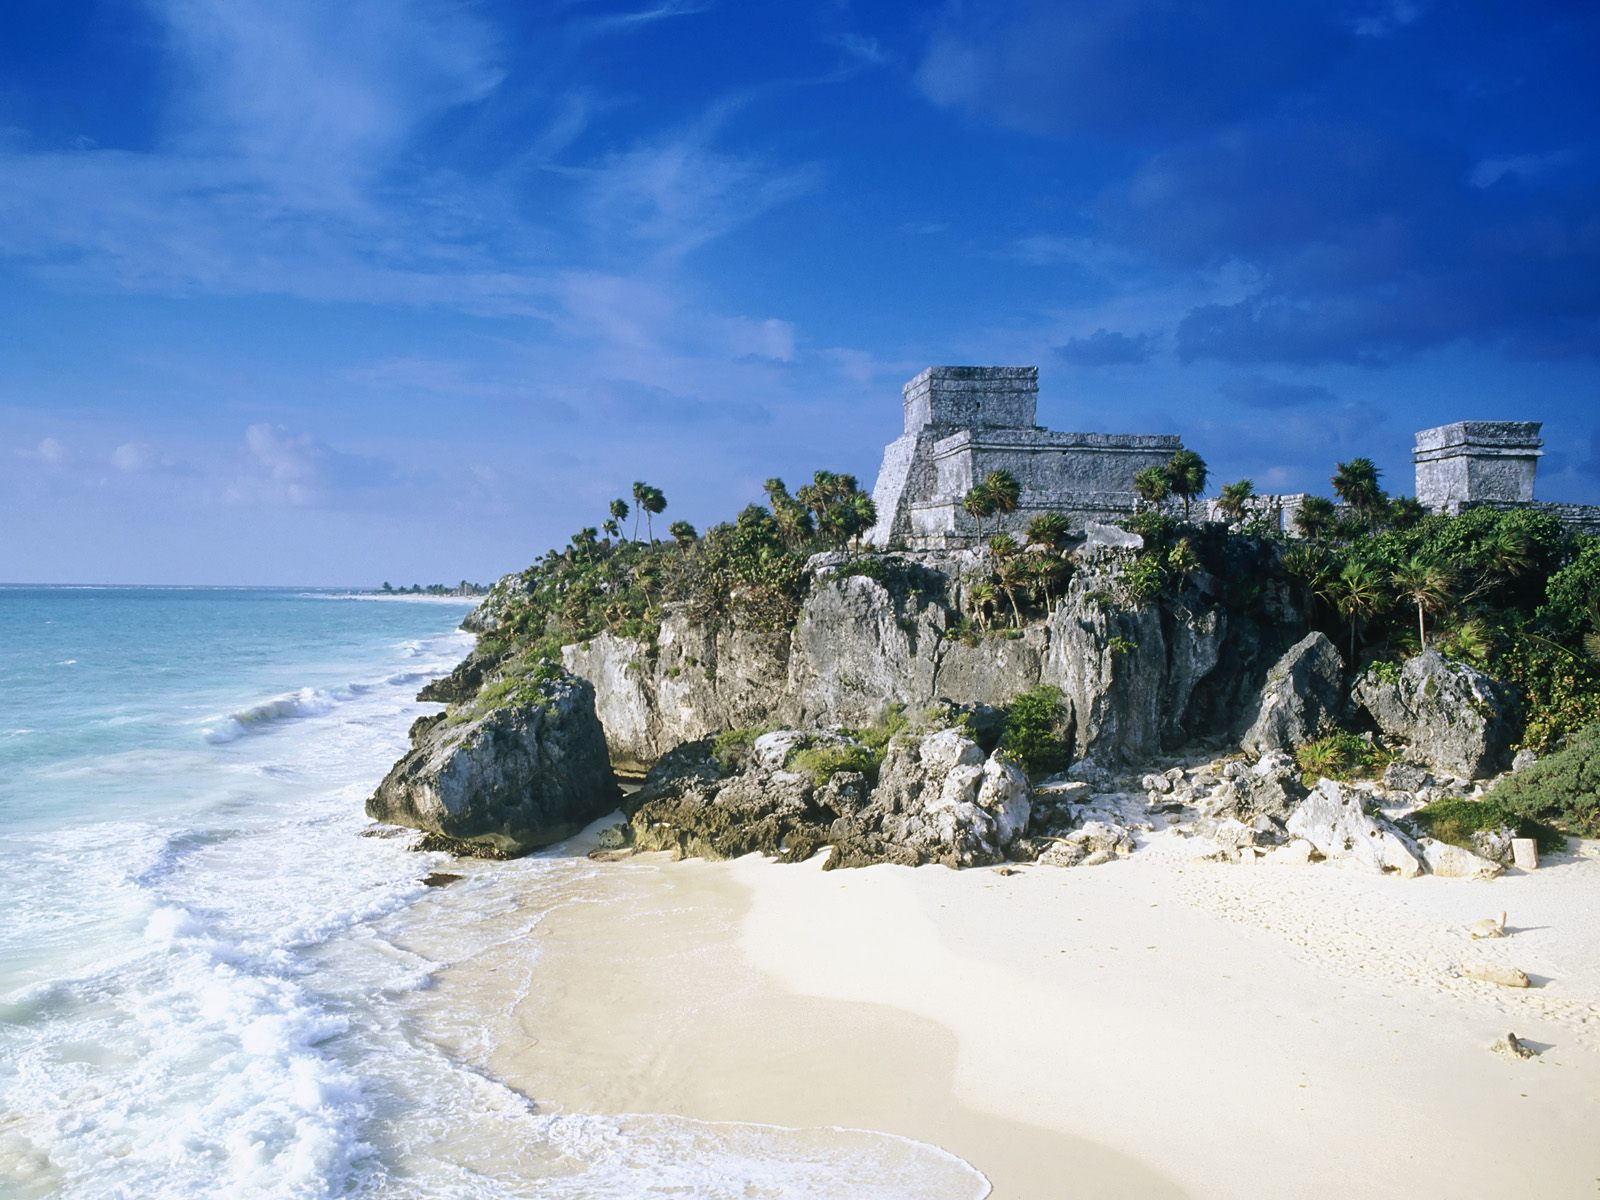 mayan ruins mexico beach 4219115 1600x1200 all for desktop. Black Bedroom Furniture Sets. Home Design Ideas